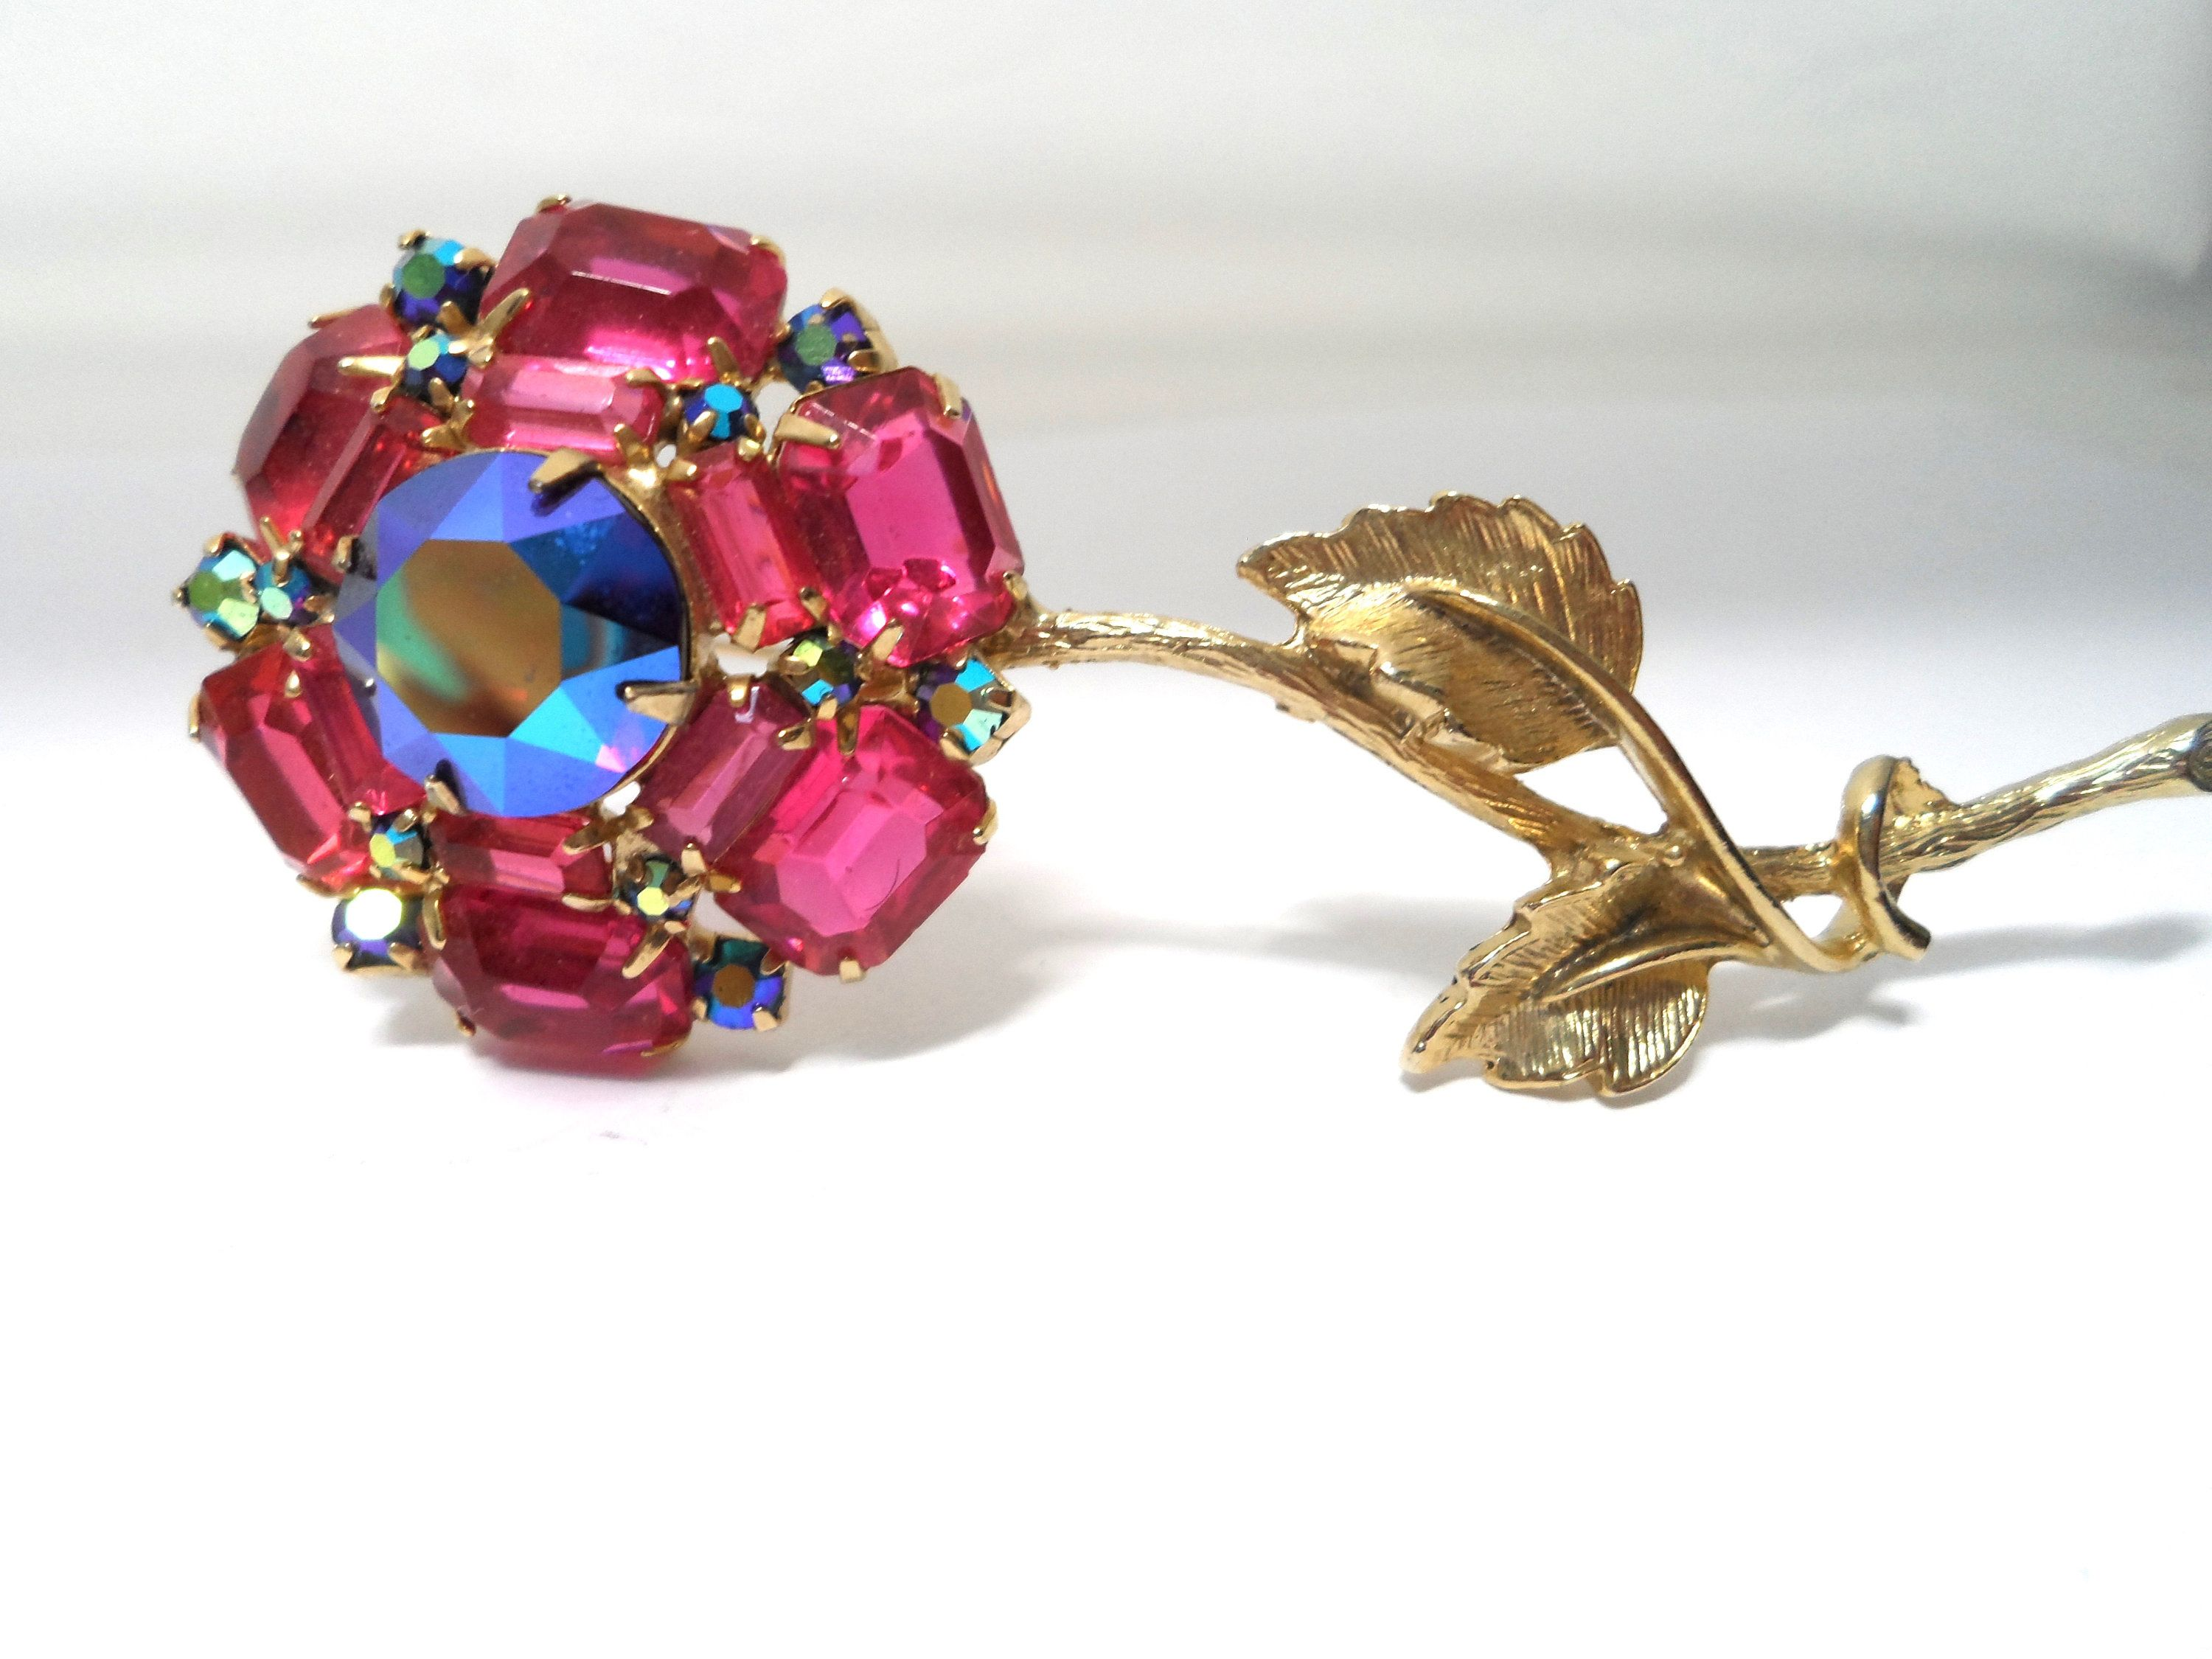 Large Dark Gold Tone Metal Ribbon Floral Brooch with Fuchsia and Light Pink Faceted Rhinestones Flower Shape Brooch with  Ribbons.